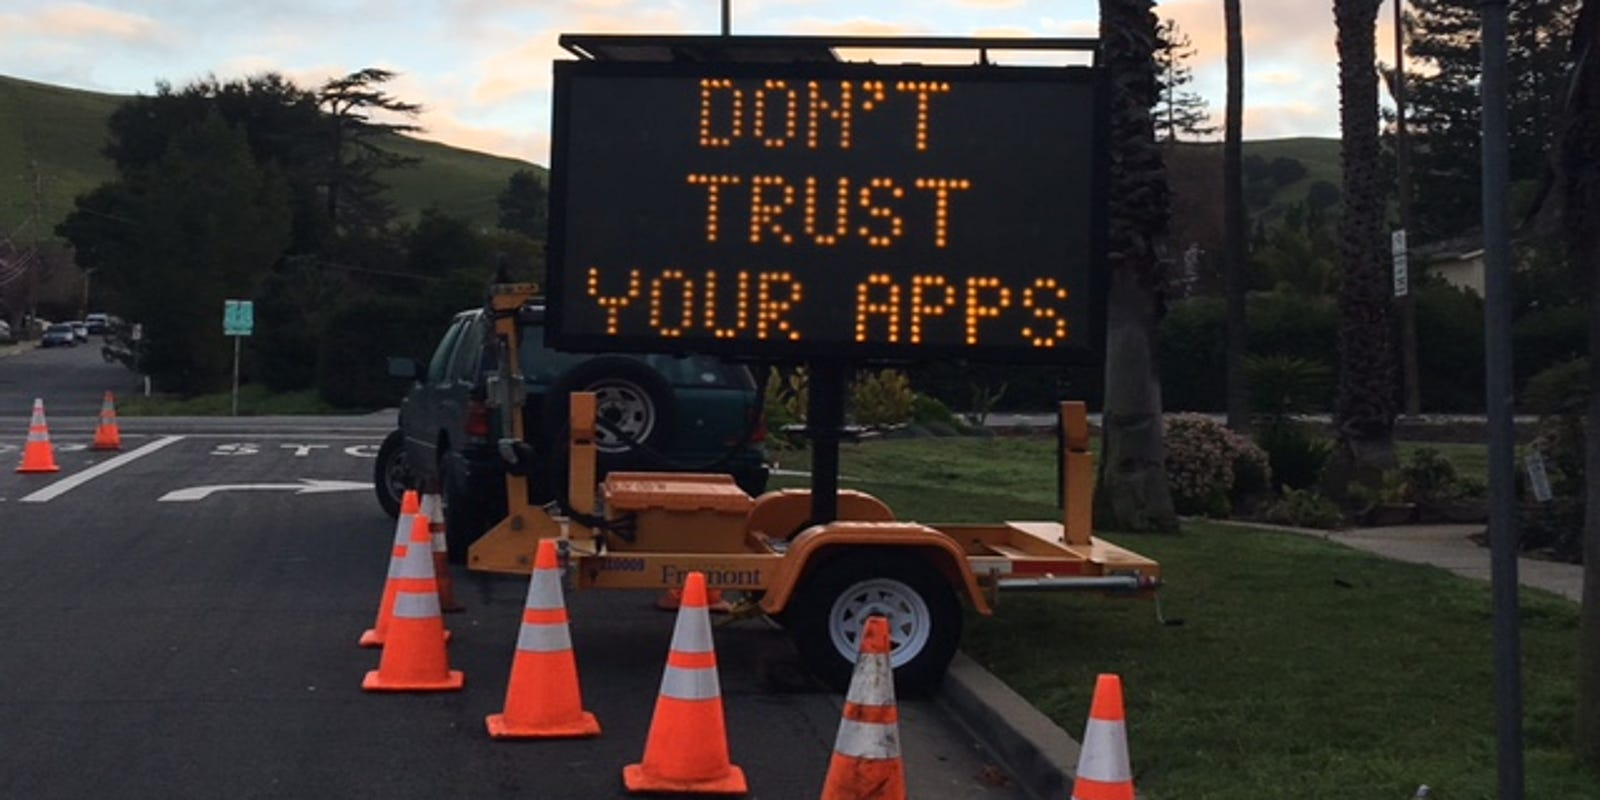 Waze And Other Traffic Dodging Apps Prompt Cities To Game The Algorithms